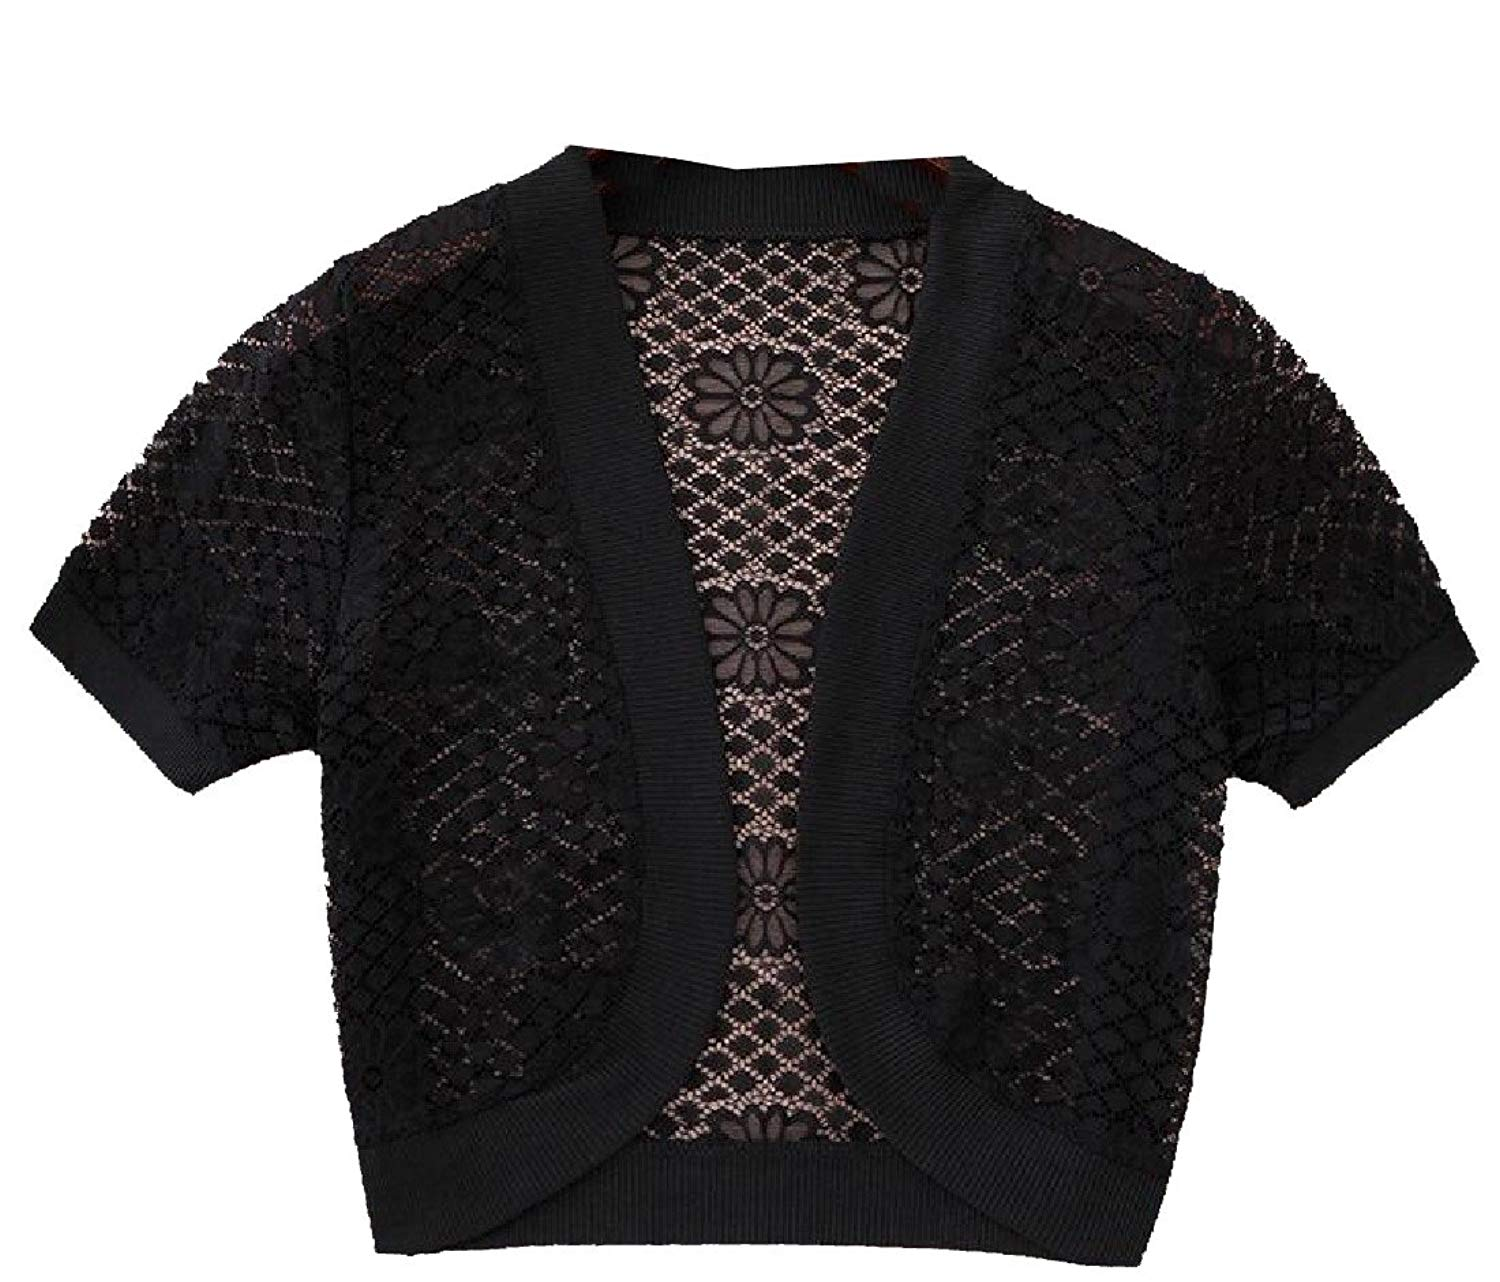 6d7f79b8524a0 Get Quotations · Andopa Women's Lace Patchwork Capes Short Sleeve Open Front  Shoulder Shrugs